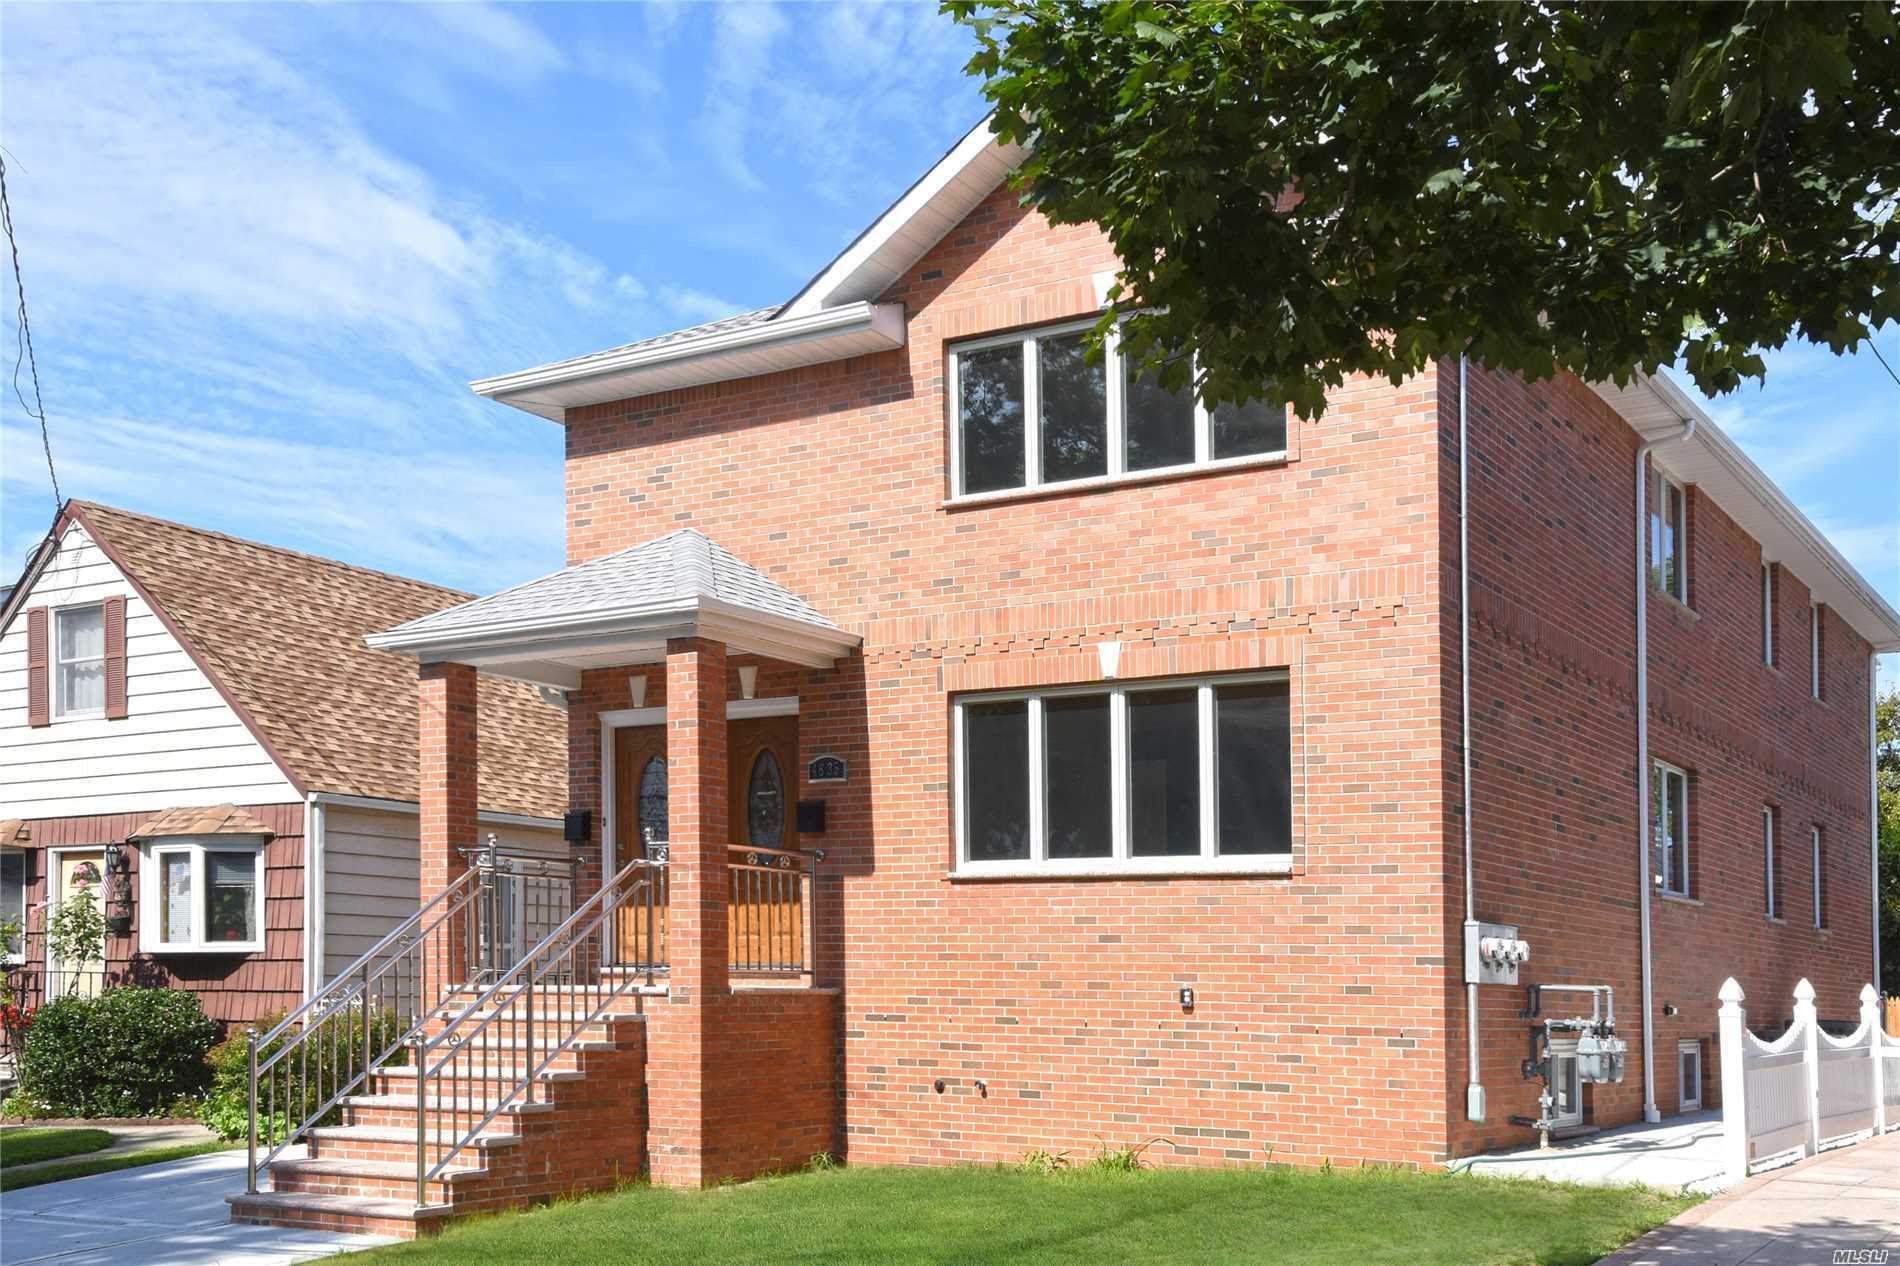 2018 Brand New 2 Family House, Lot 40X100 4000Sqft, Hardwood Floor, With Great Layout, Large Basement, Large Back Yard, #26 Best School Distract , Walking Distance To Q27,31, & Super Market, Bell Blvd. Must See!!! ___ Bsmt/Subfl:Full Finish Basement 1Bathroom. 1st Floor:3 Bedroom 2 Bathroom Living Room, Dining Room. 2nd Floor:3 Bedroom 2 Bathroom Living Room, Dining Room.